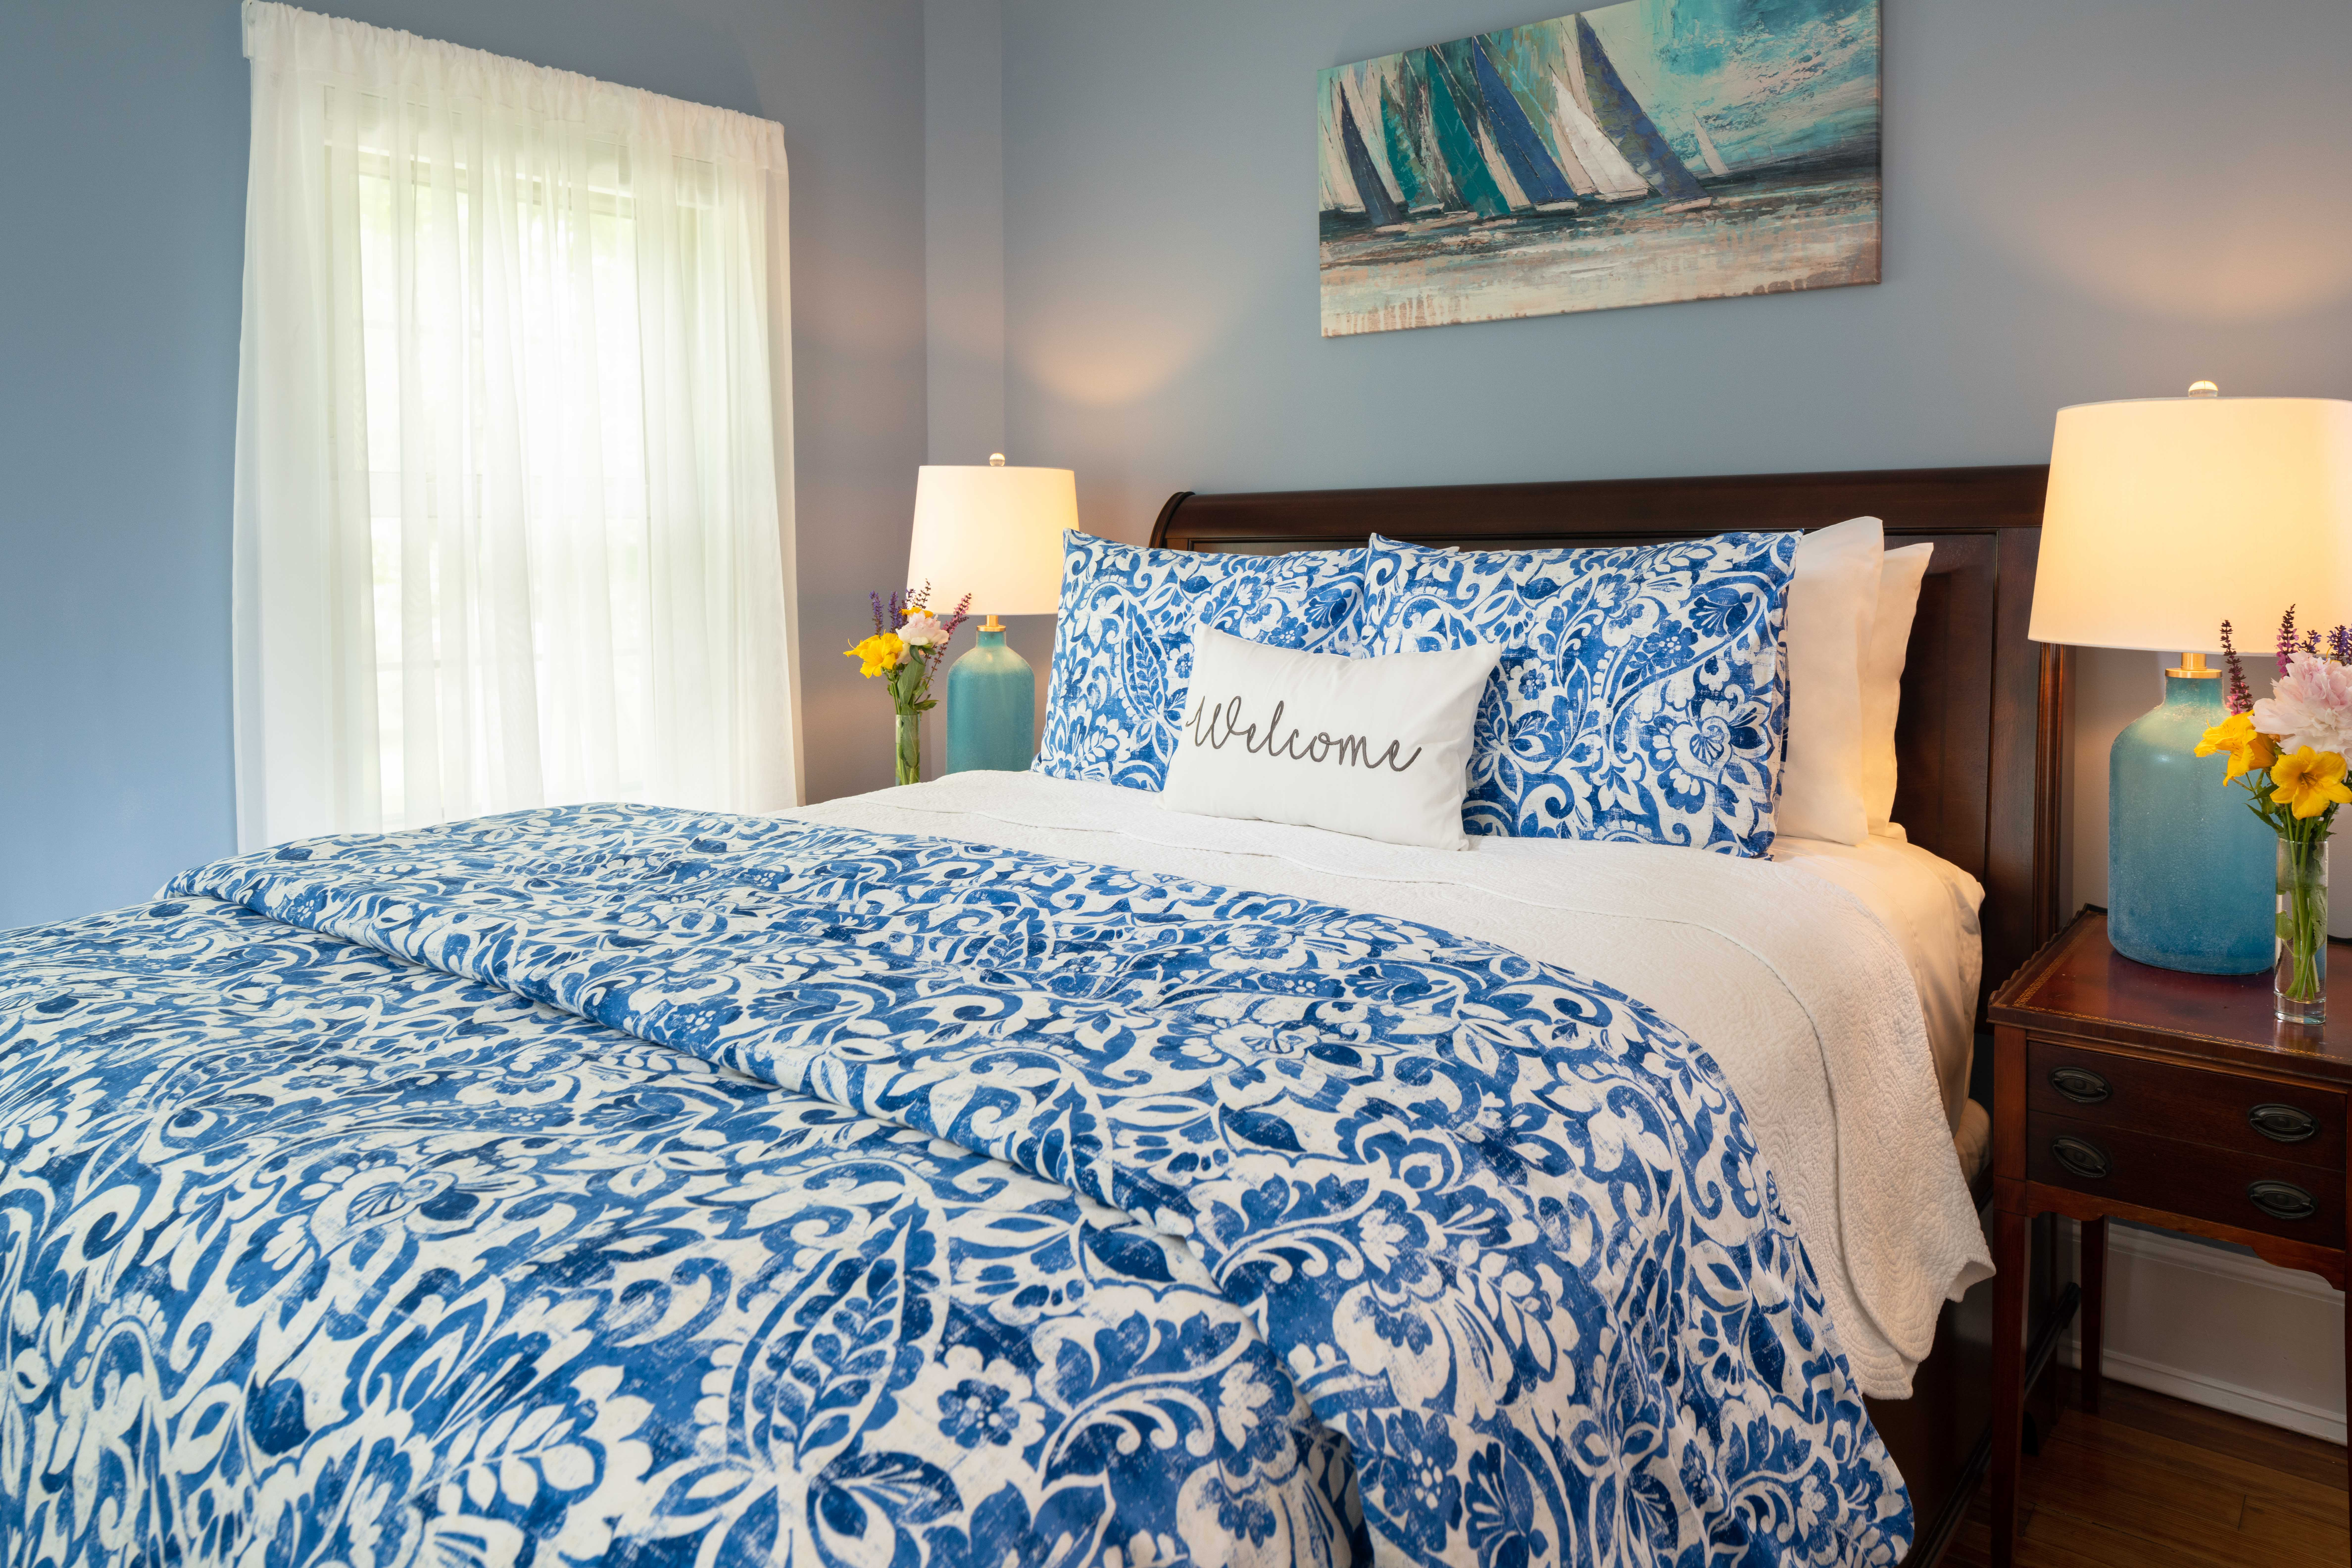 Bed with decorative pillow